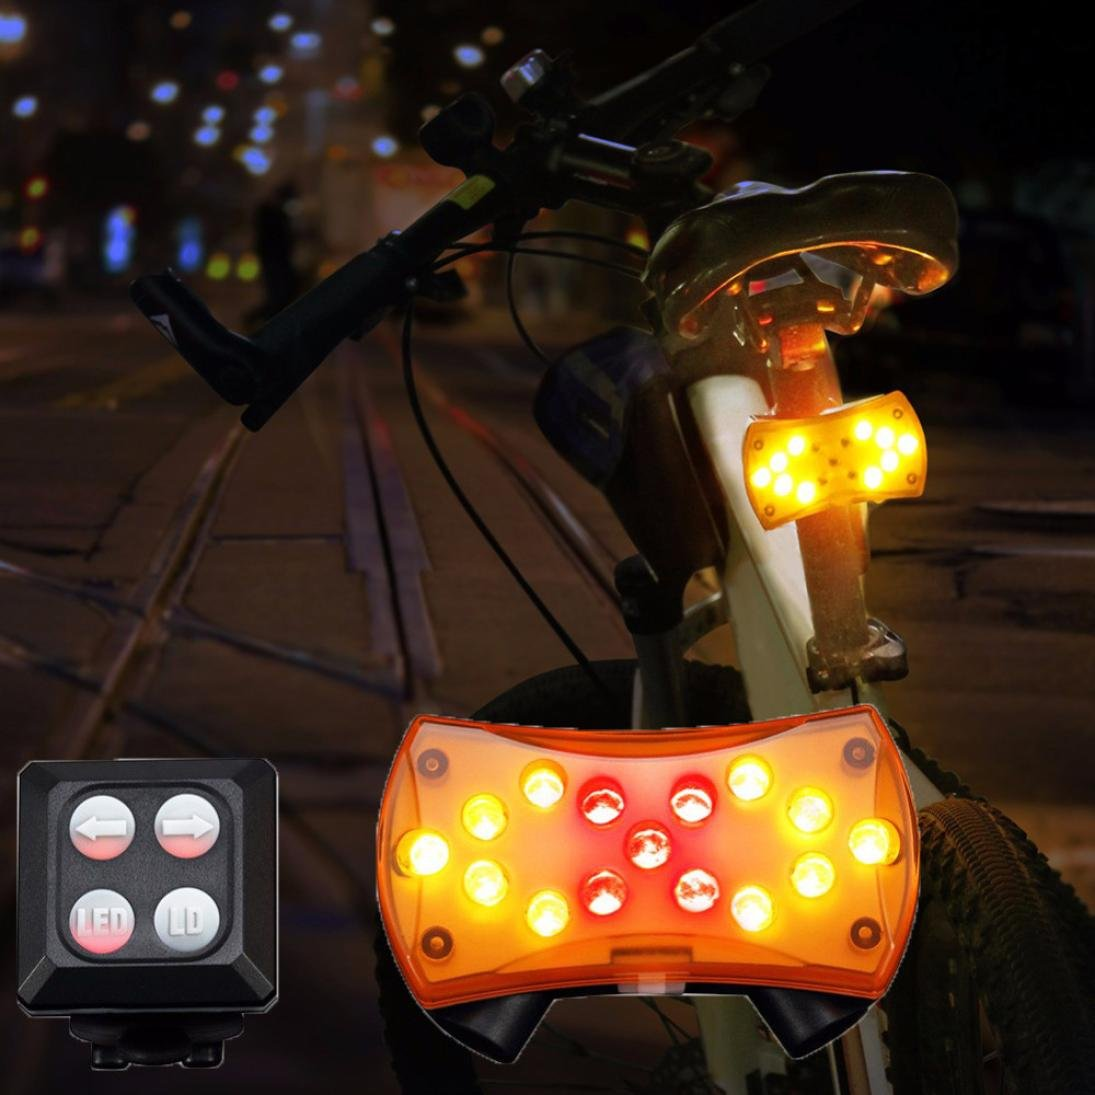 Quaanti Wireless Control Turn Signal Light for Bicycle Turning Bike Light Safety 2018 Remote Control USB Bicycle Lights Yellow Lamp Yellow